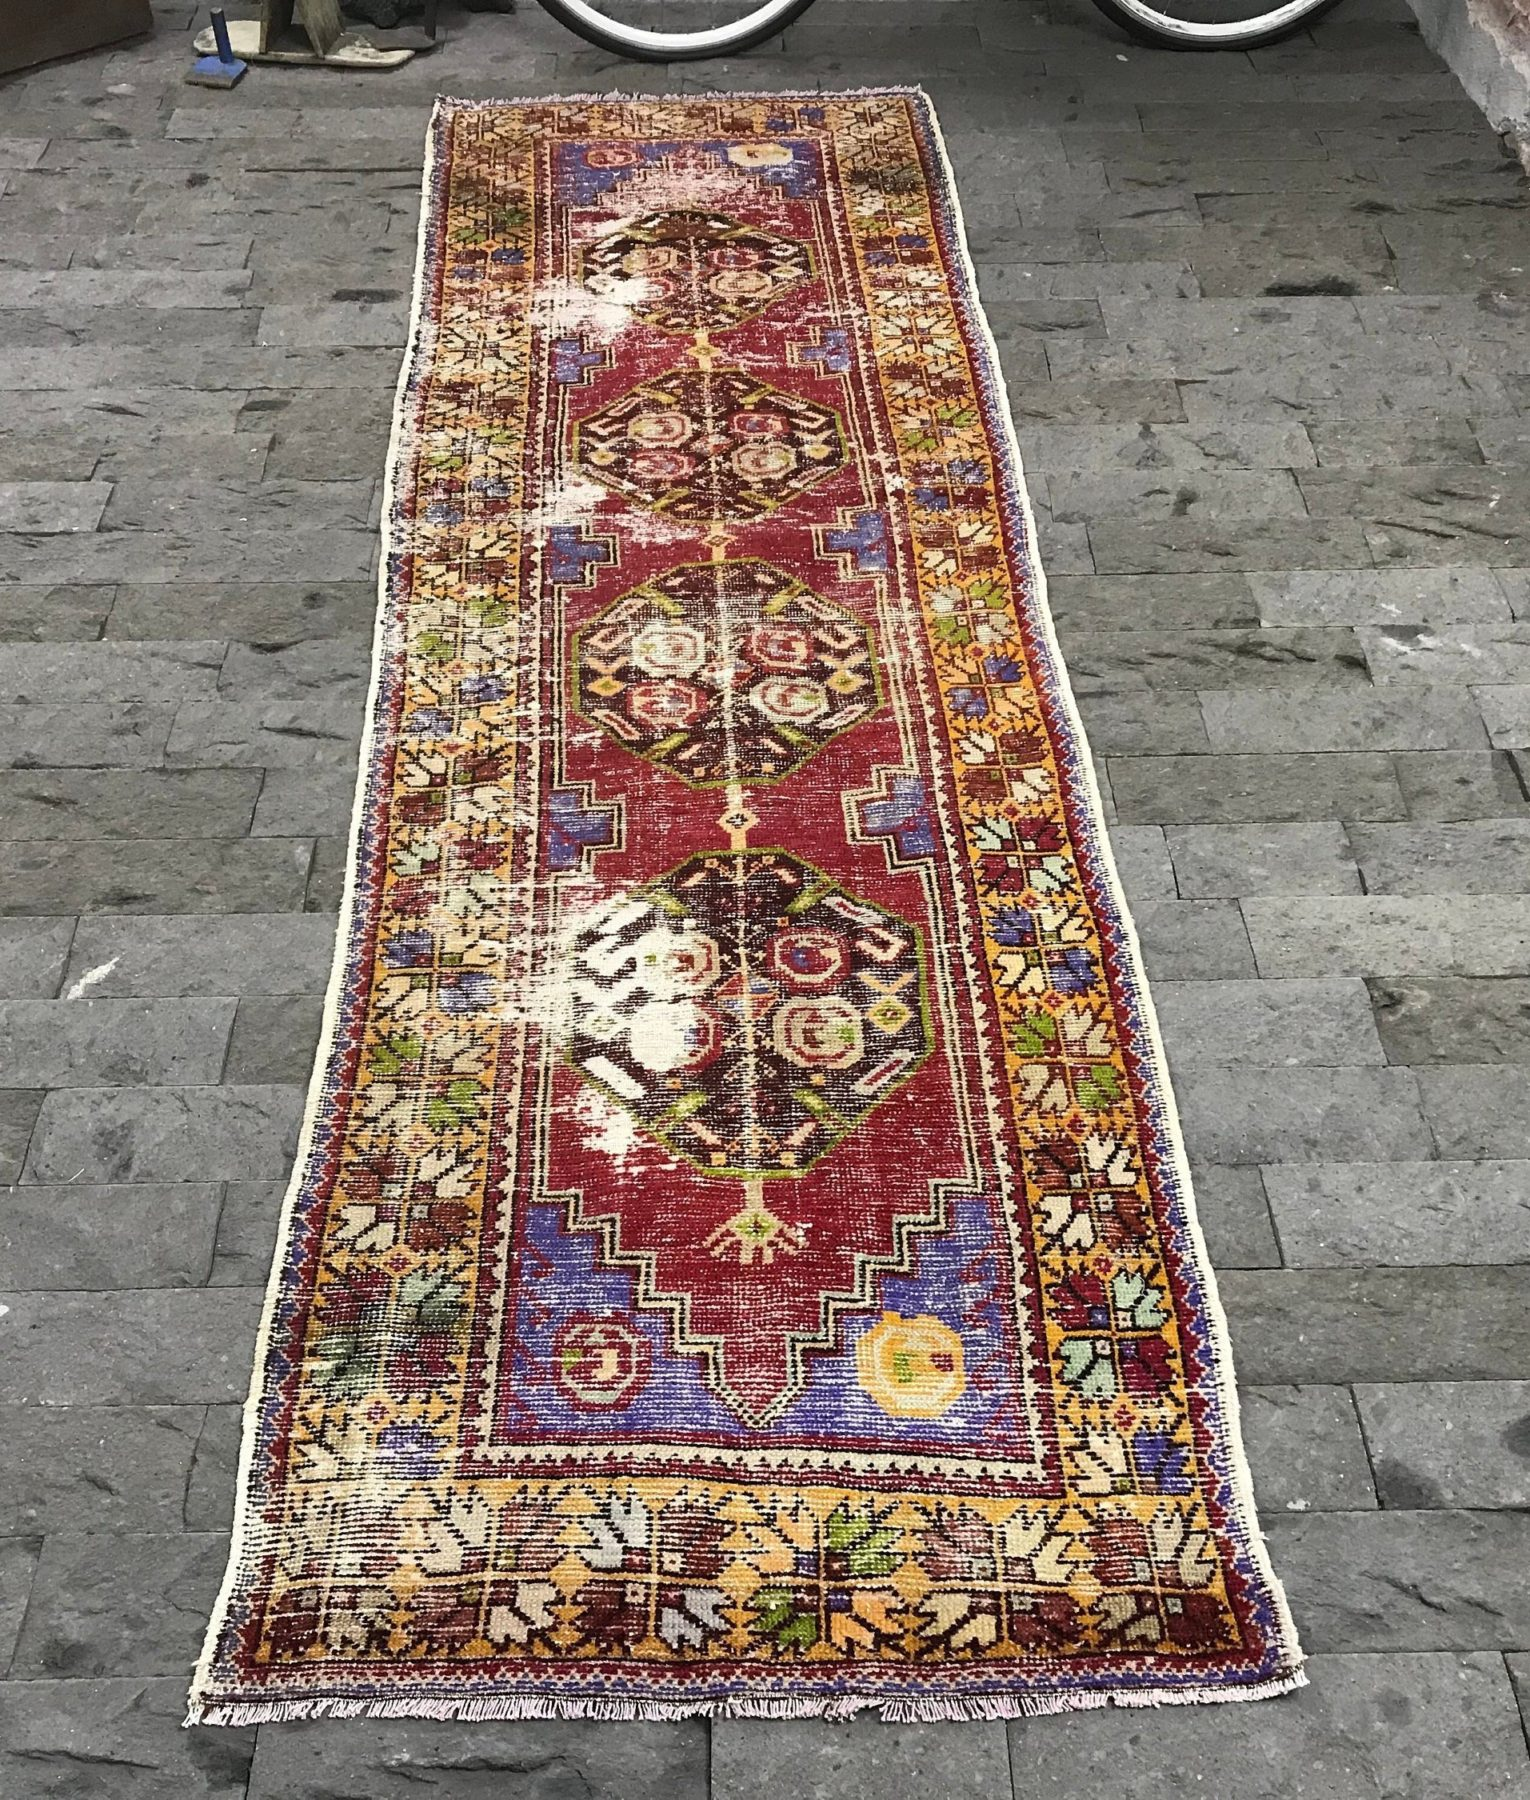 Cherry Runner Rug 3x9 8ft Red Oushak Rug Kitchen Runner Rug Turkish Rug Boho Rug Handmade Rug Pink Turkish Rug Anatolian Rug